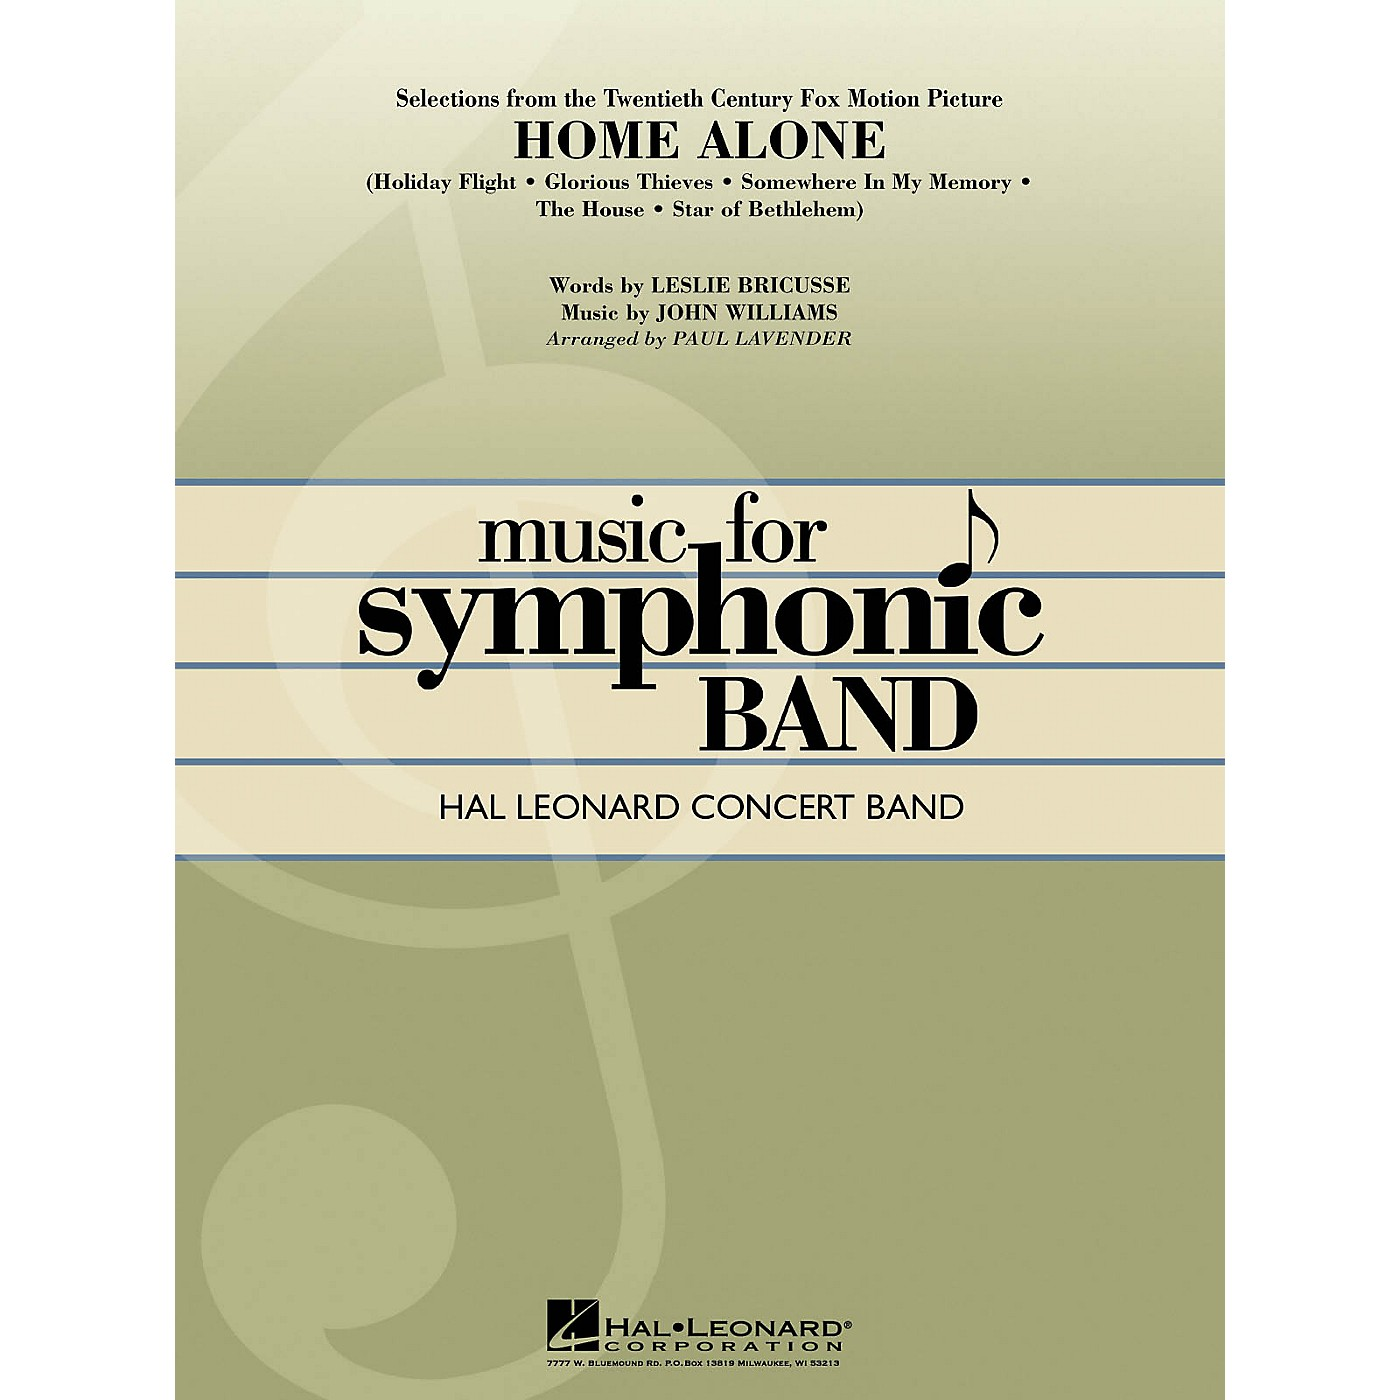 Hal Leonard Selections from Home Alone Concert Band Level 4 Arranged by Paul Lavender thumbnail